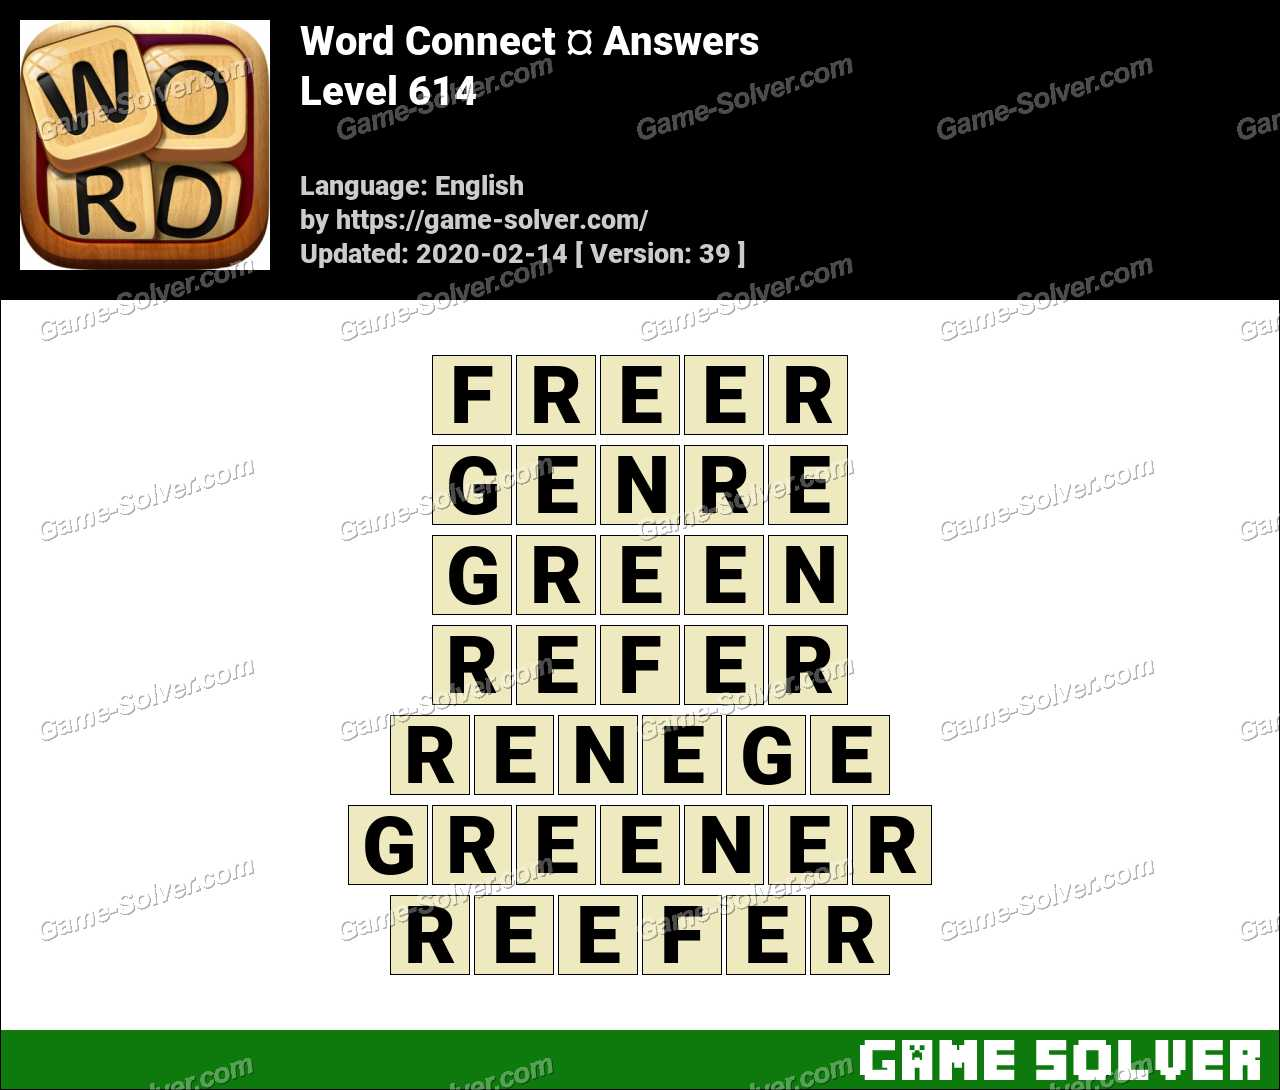 Word Connect Level 614 Answers